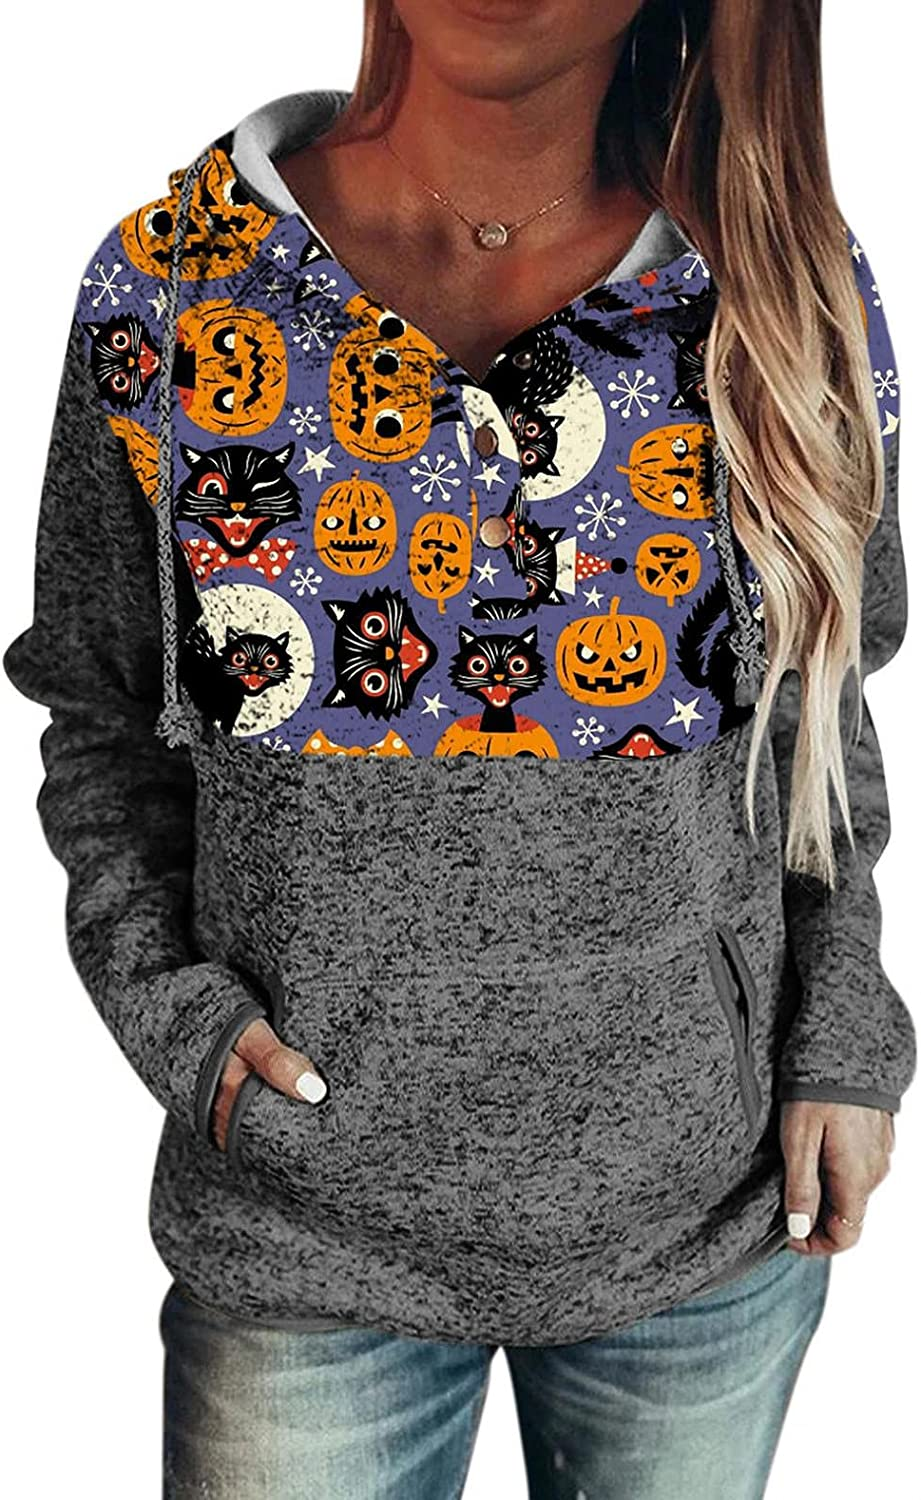 felwors Hoodies for Women, Womens Pullover Hoodies with Pockets Button Down Drawstring Casual Long Sleeve Sweatshirts